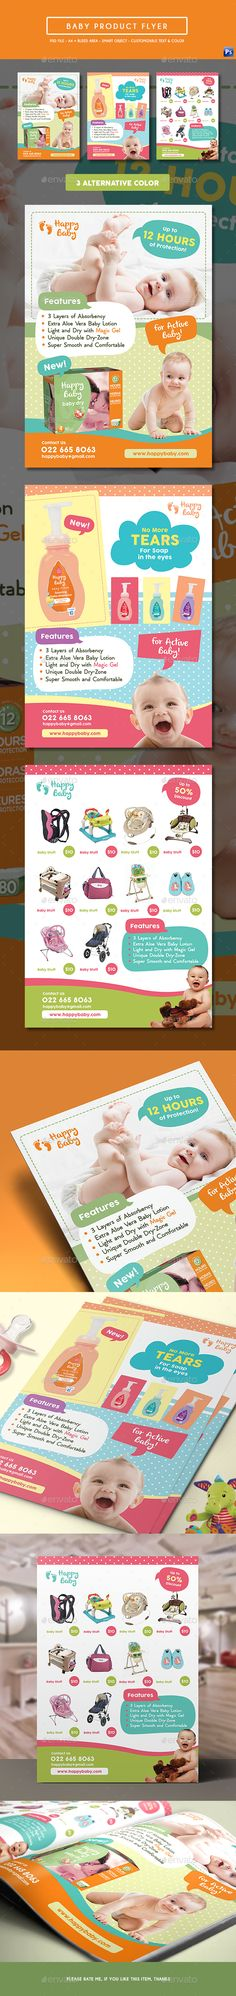 Baby Product Flyer / Magazine Ad — Photoshop PSD #fashion style #fun • Available here → https://graphicriver.net/item/baby-product-flyer-magazine-ad/17853508?ref=pxcr